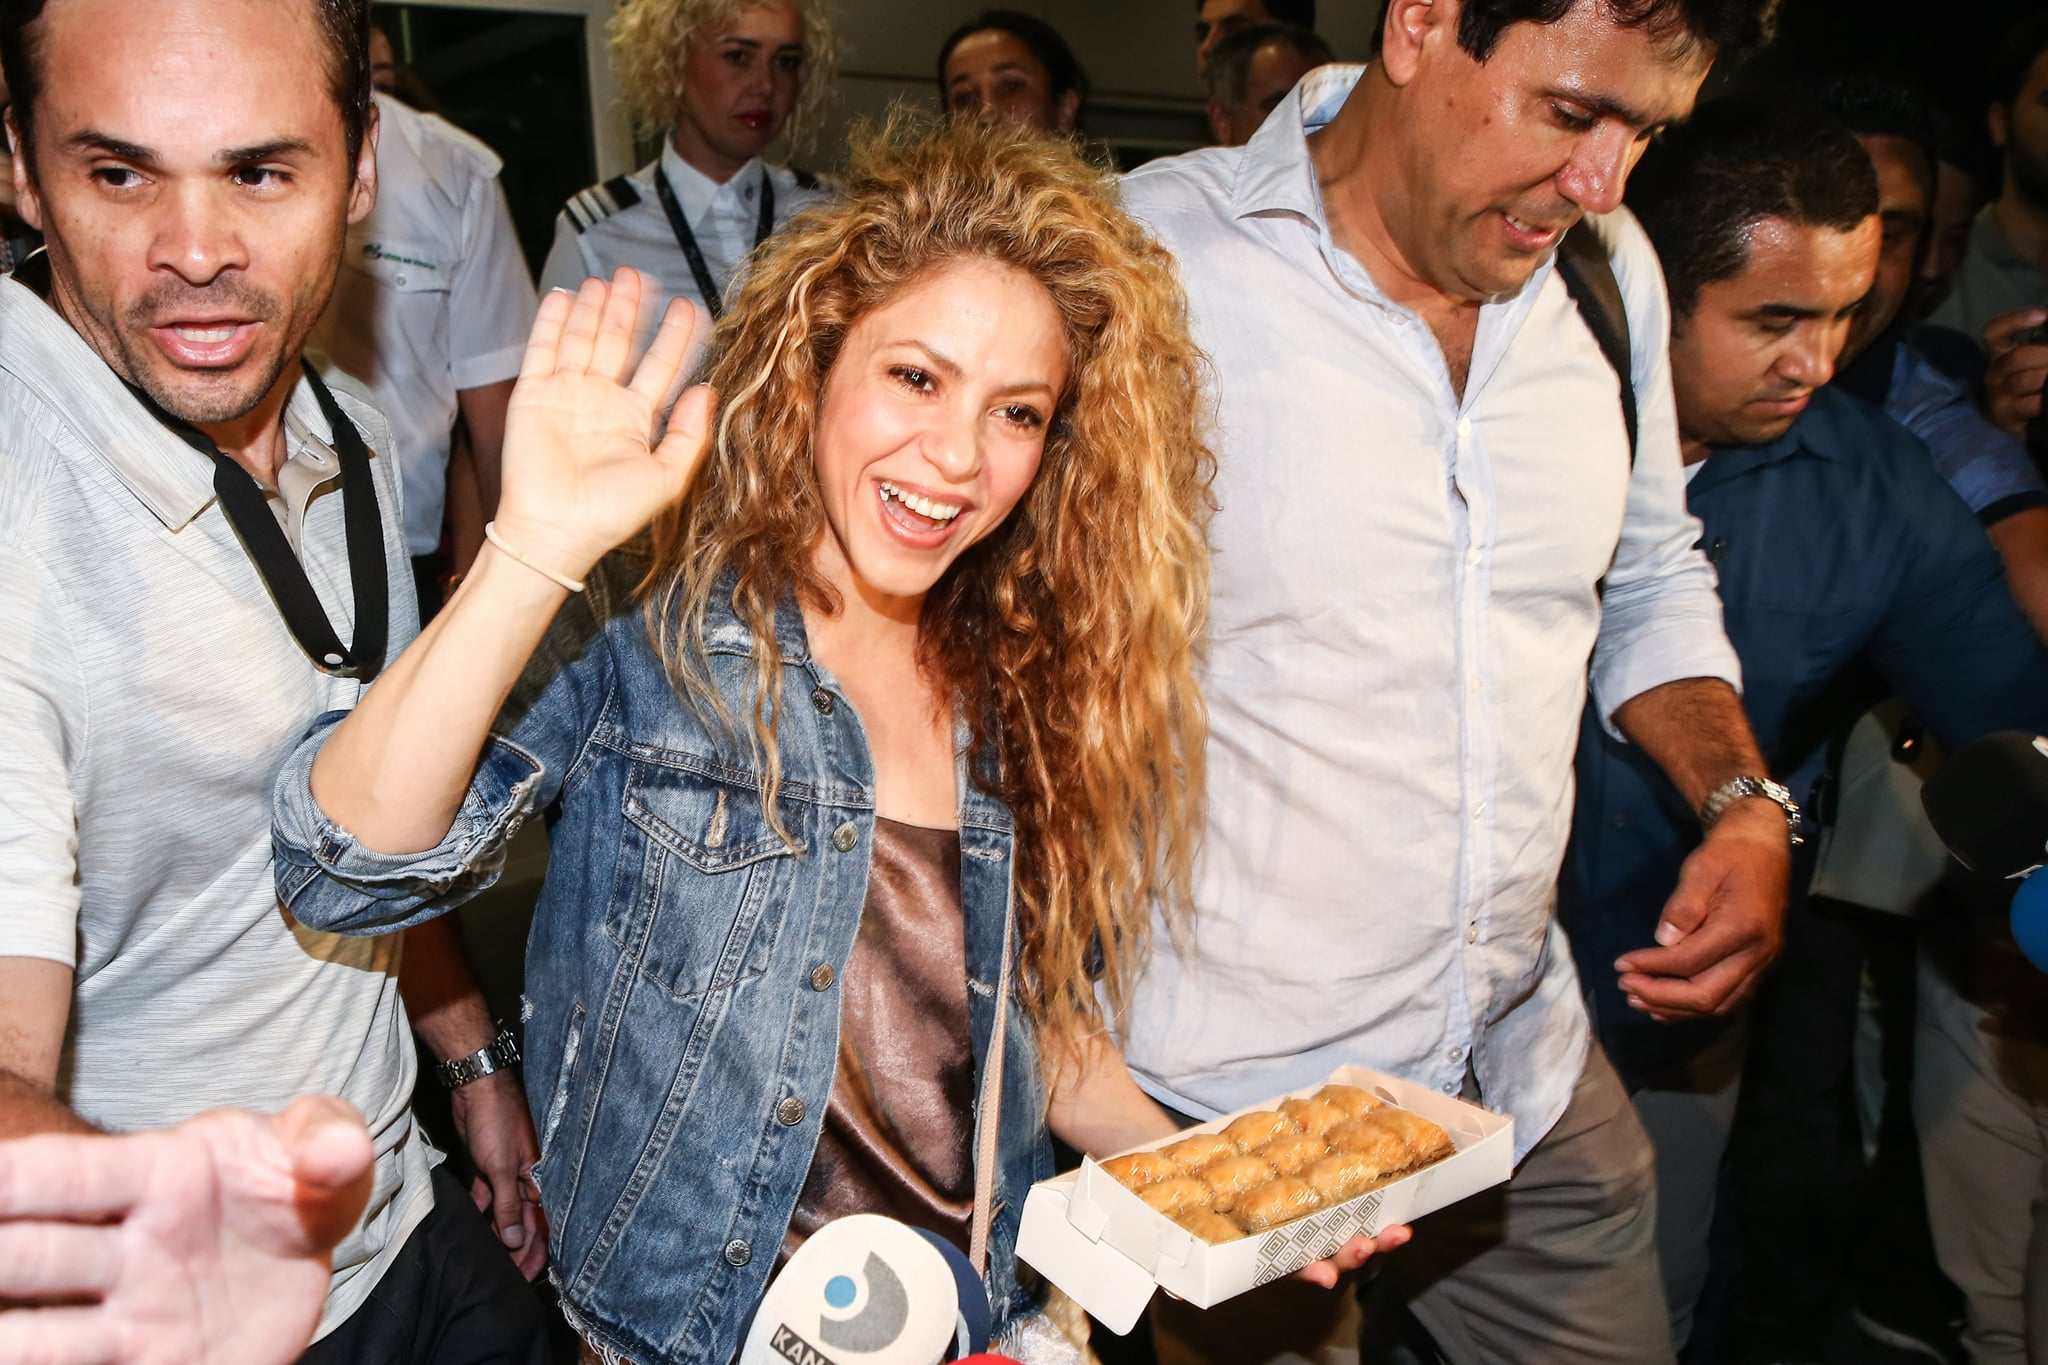 ISTANBUL, TURKEY - JULY 10: Columbian pop star Shakira holds baklava, offered by press members, as she arrives for a concert in Istanbul, Turkey on July 10, 2018. Grammy award-winning singer will perform at Vodafone Park on July 11 as part of her 6th world tour 'El Dorado'. (Photo by Onur Coban/Anadolu Agency/Getty Images)